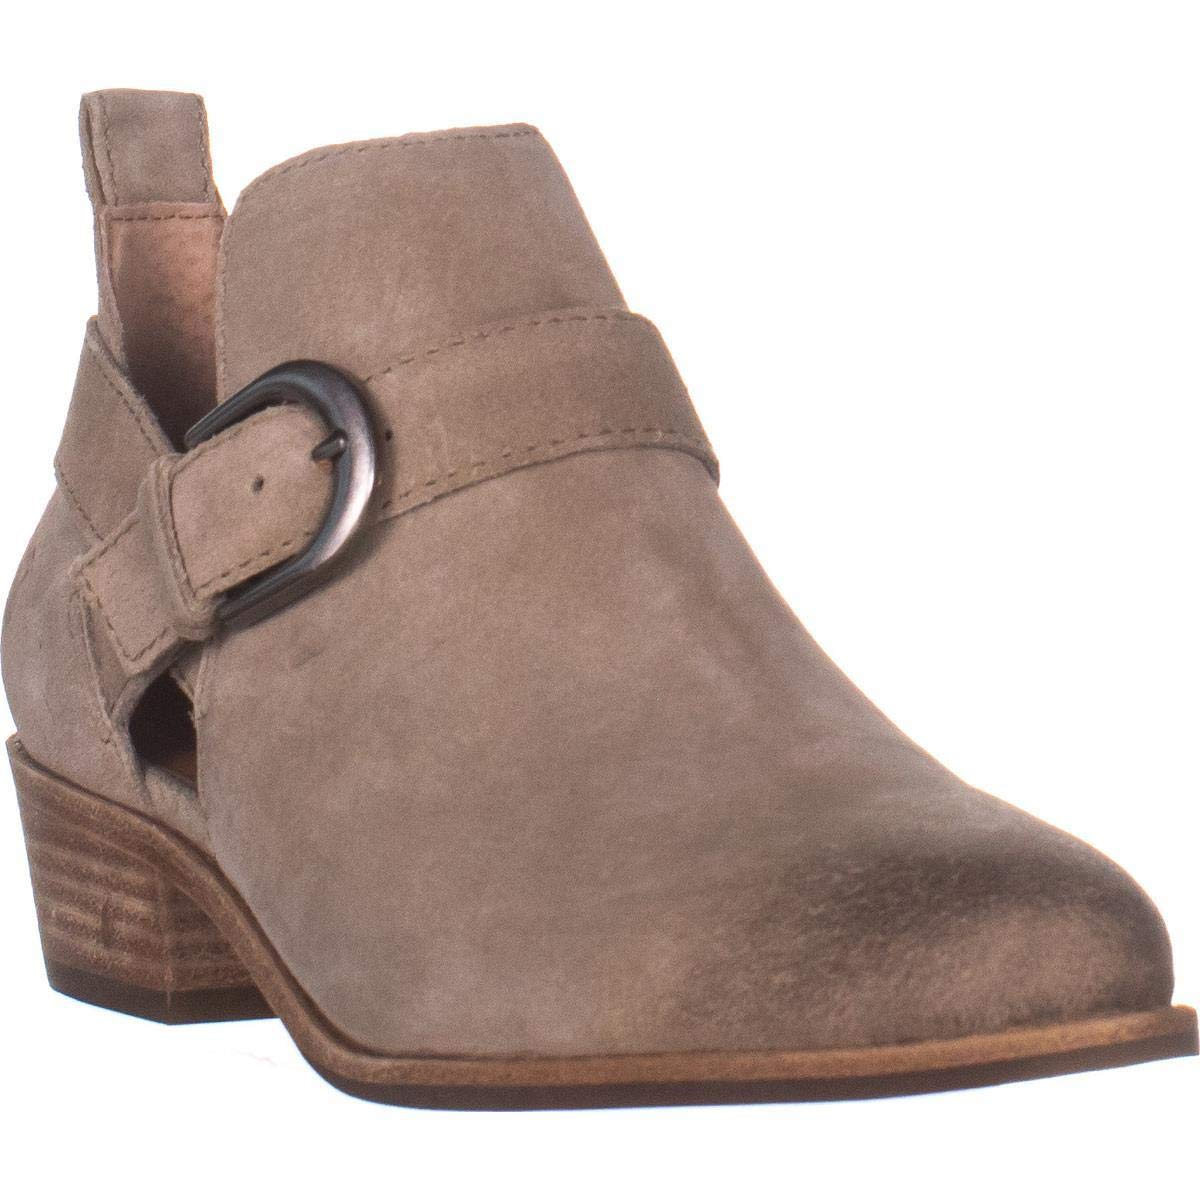 FRYE Womens Bootie Taupe Suede